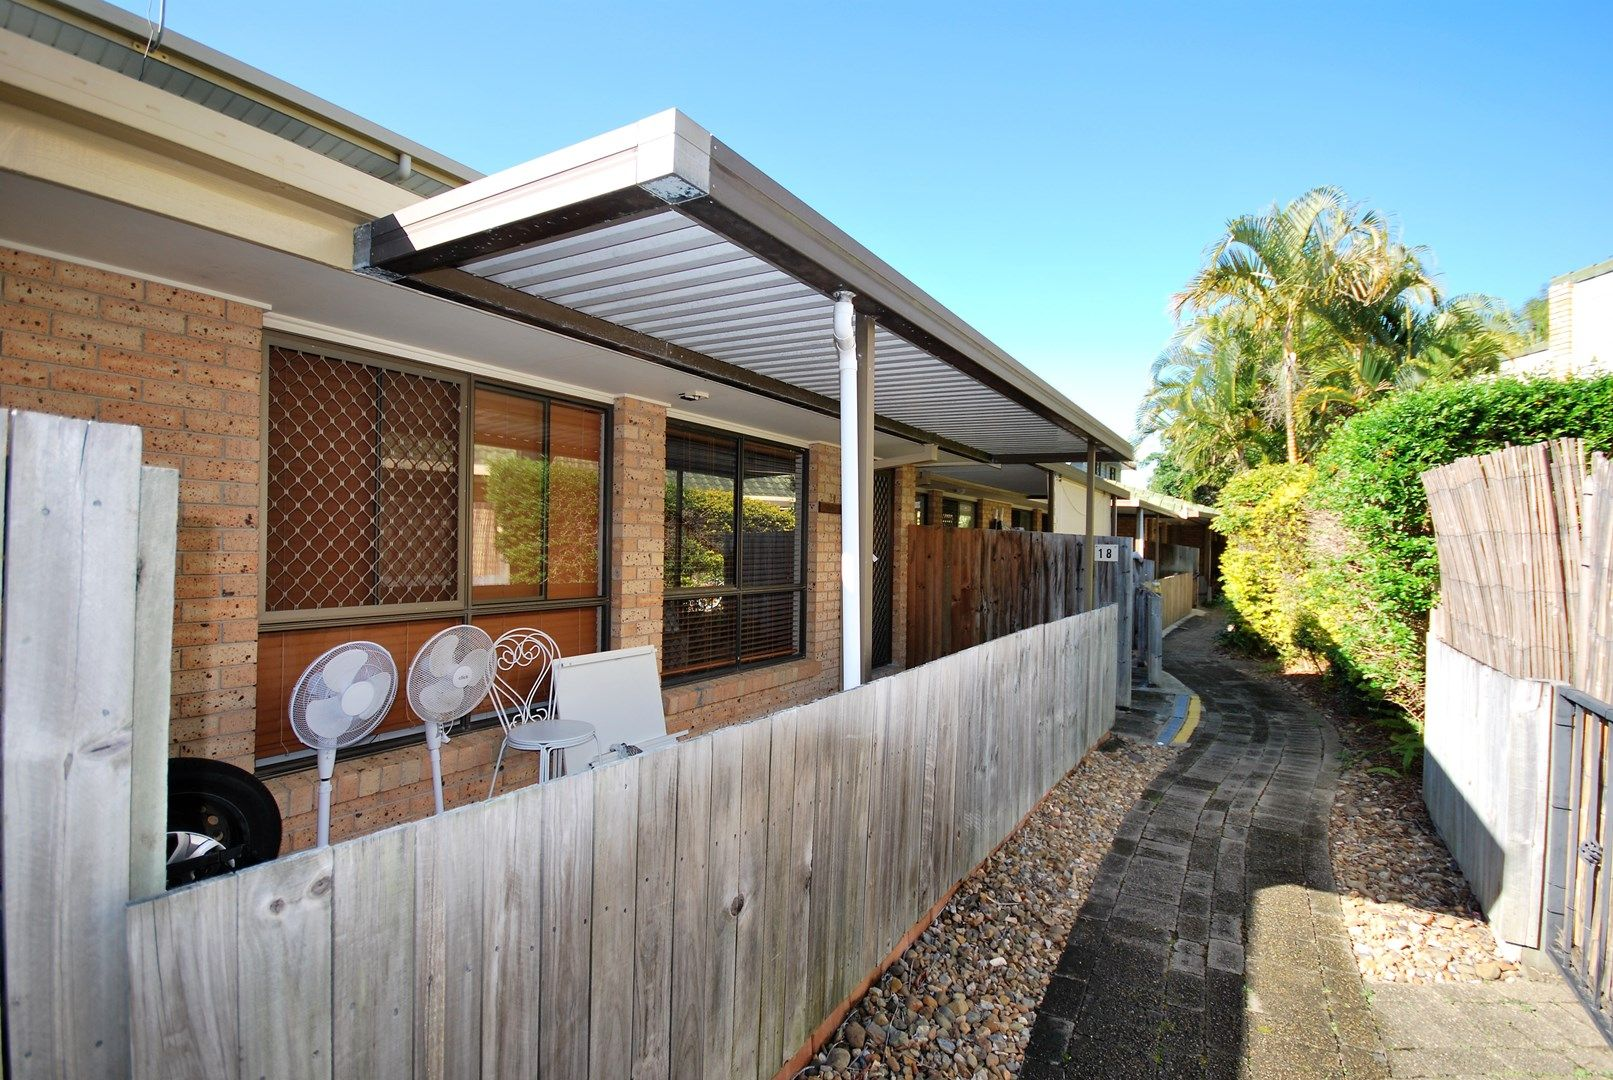 18/30 Sportsman Ave, Mermaid Beach QLD 4218, Image 0